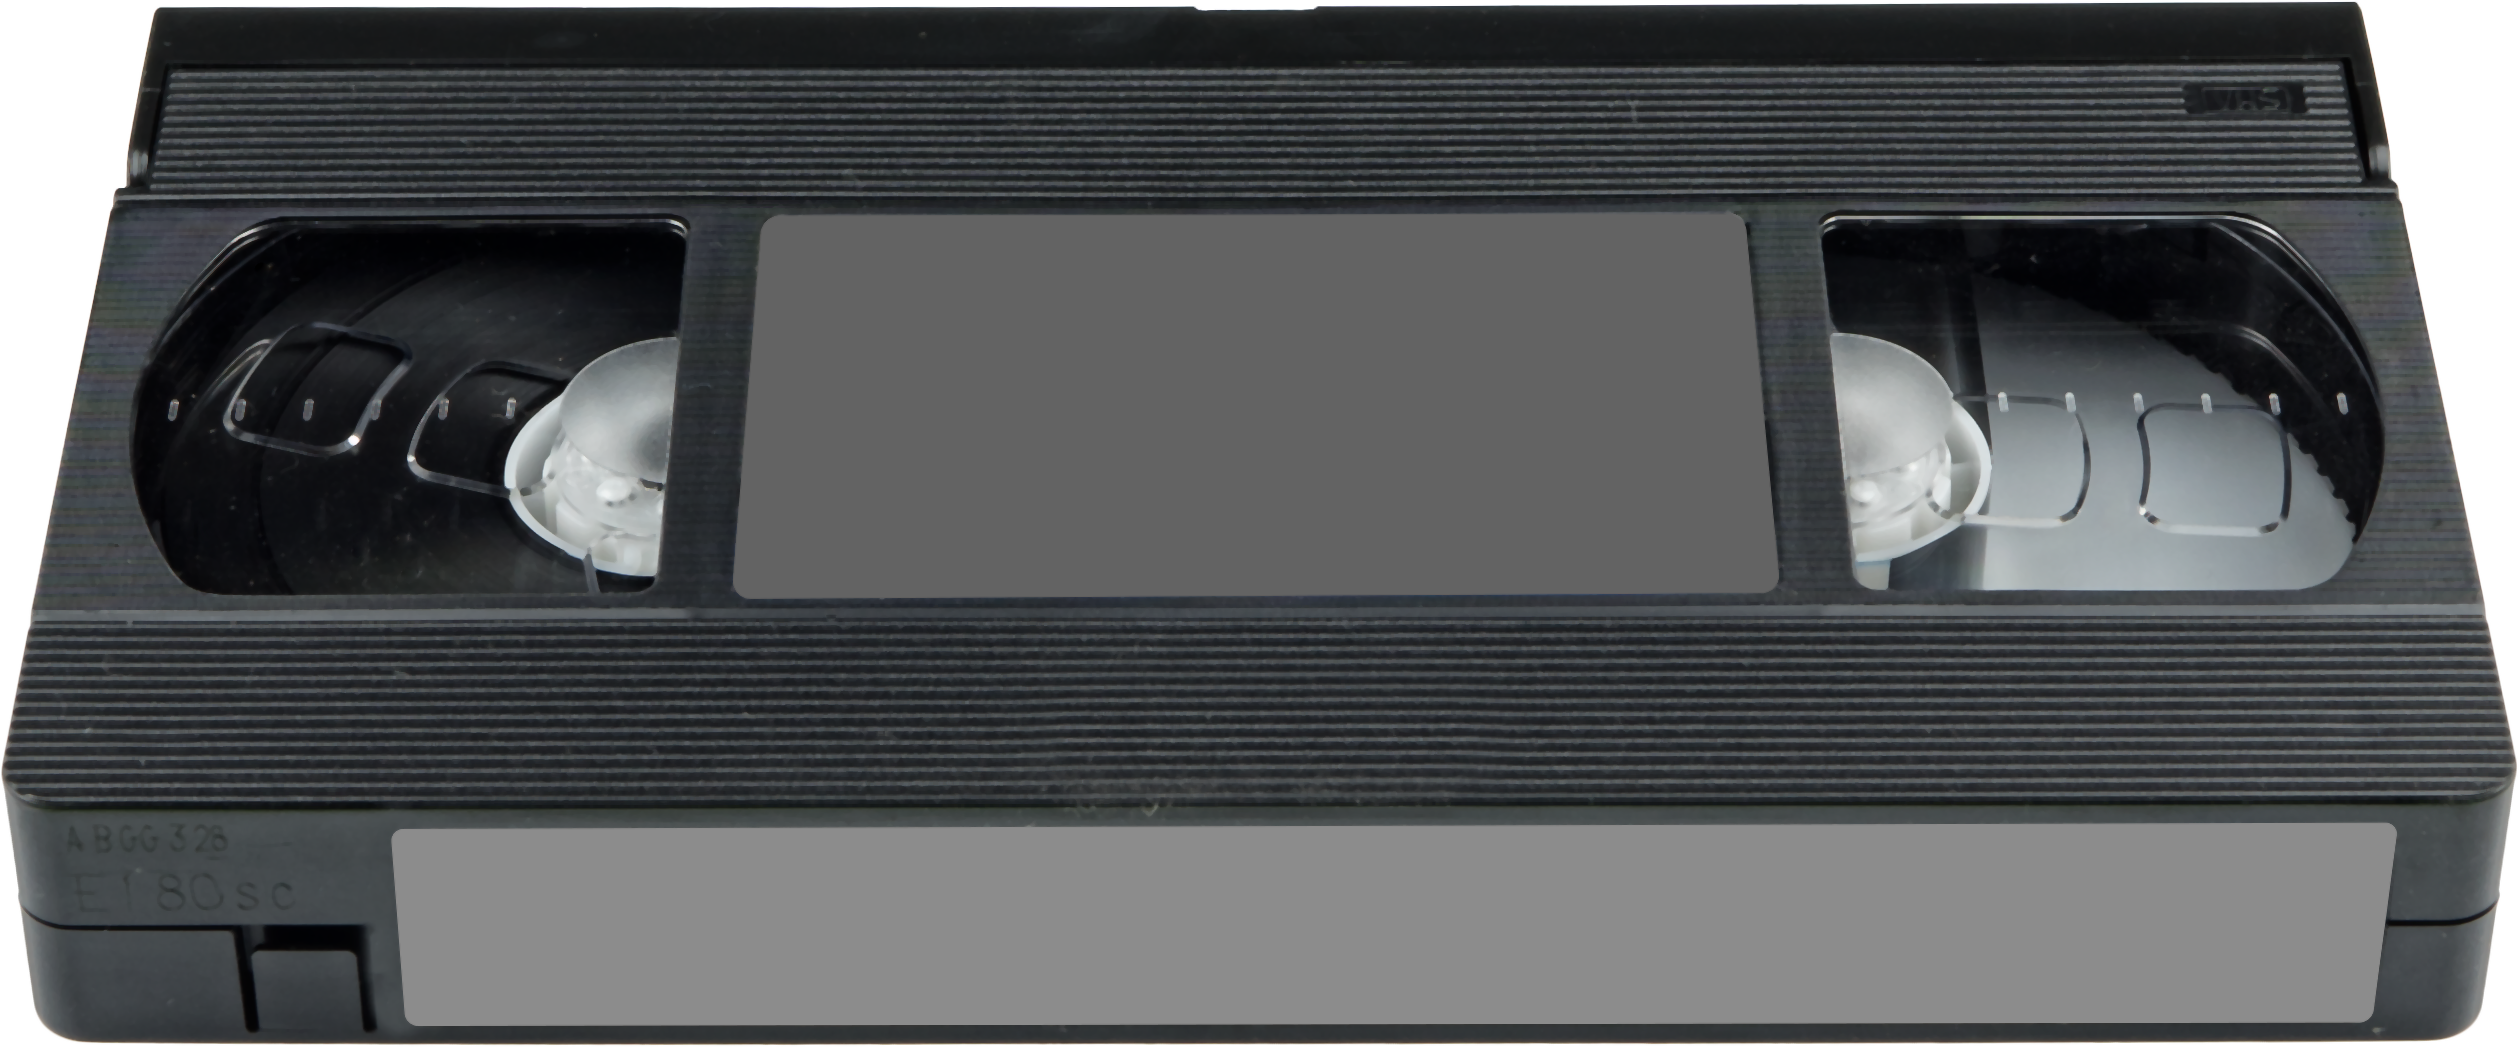 Vhs PNG - 54636